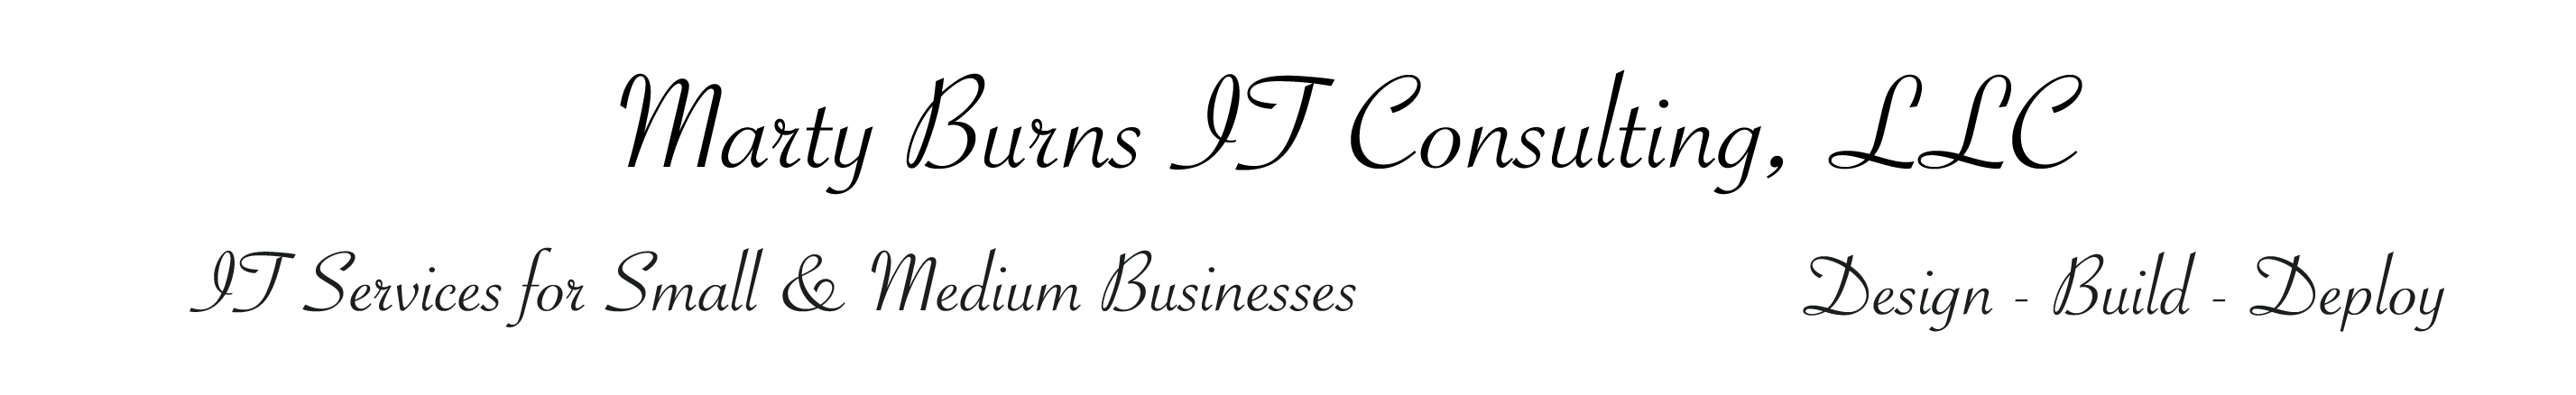 Marty Burns IT Consulting, LLC